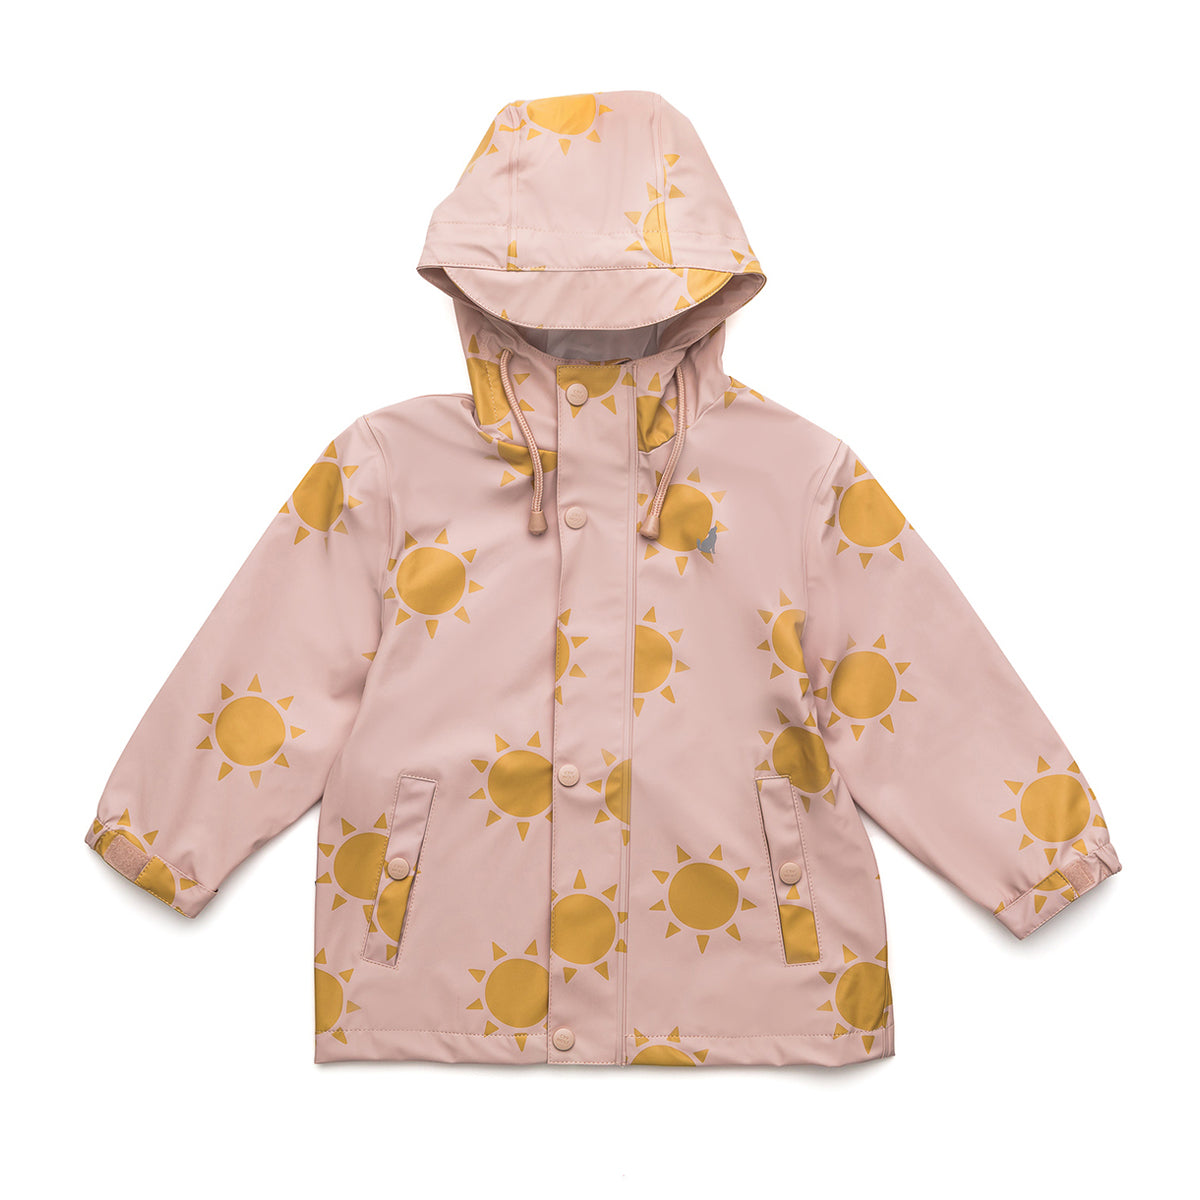 Sunshine Play Rain Jacket